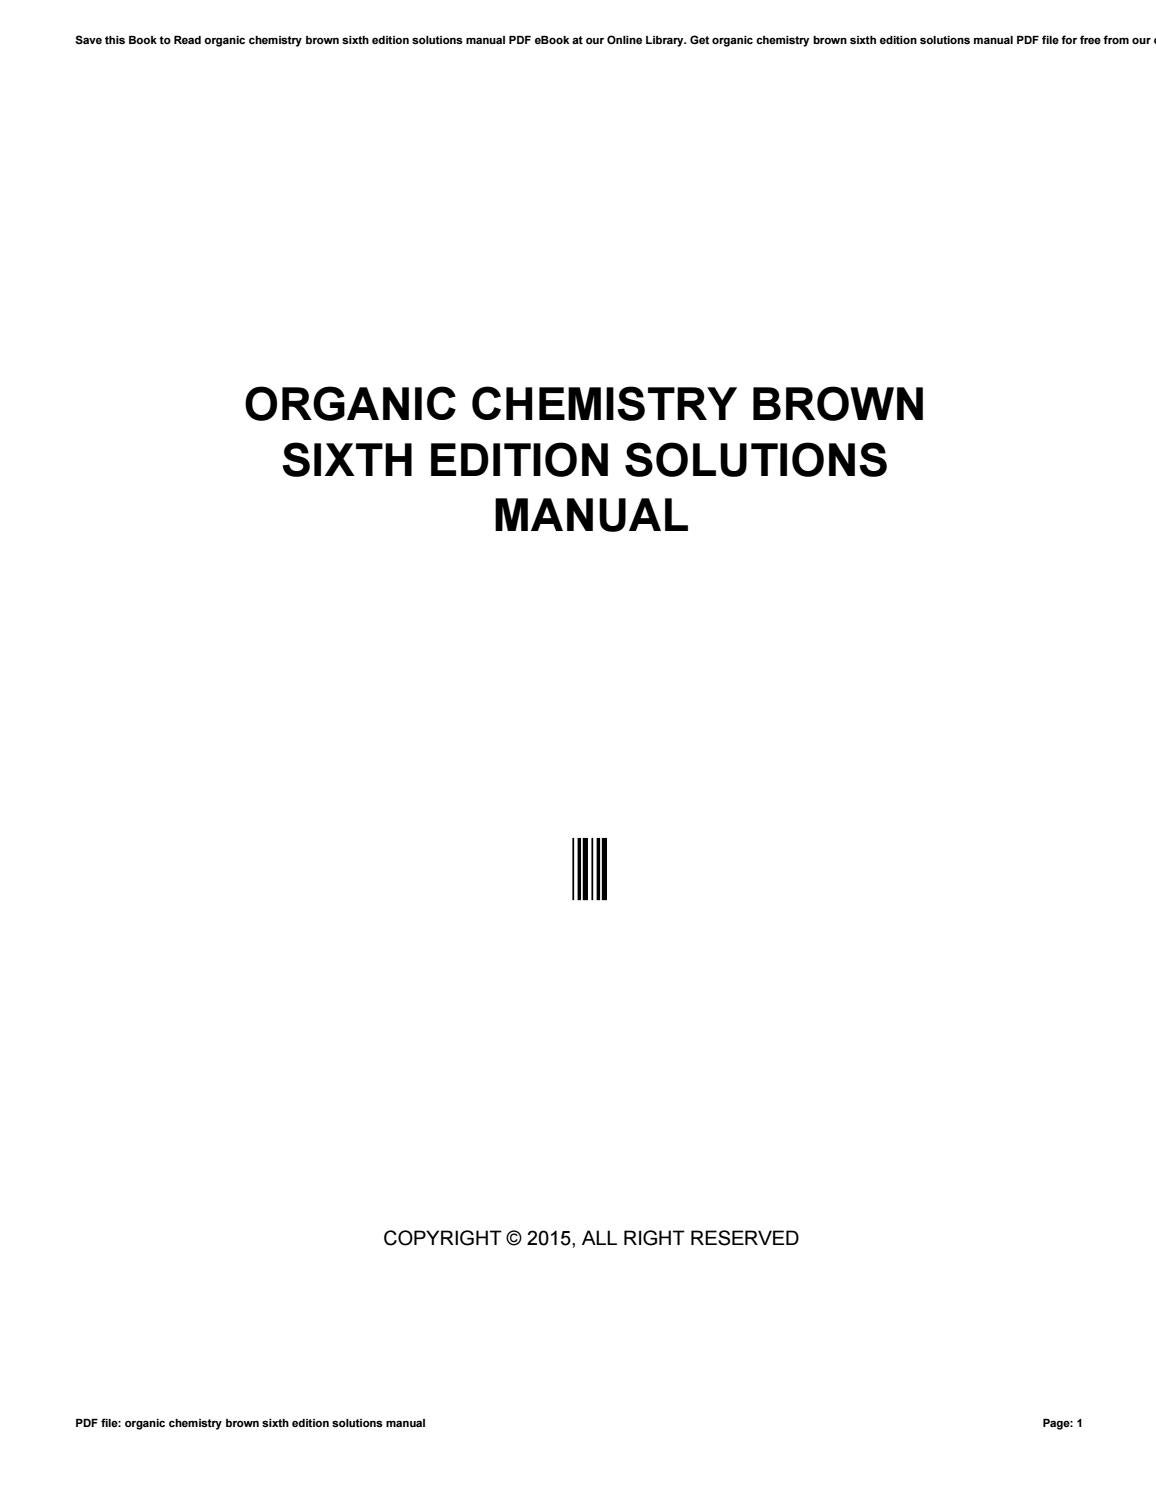 Organic chemistry brown sixth edition solutions manual by nezzart197 - issuu